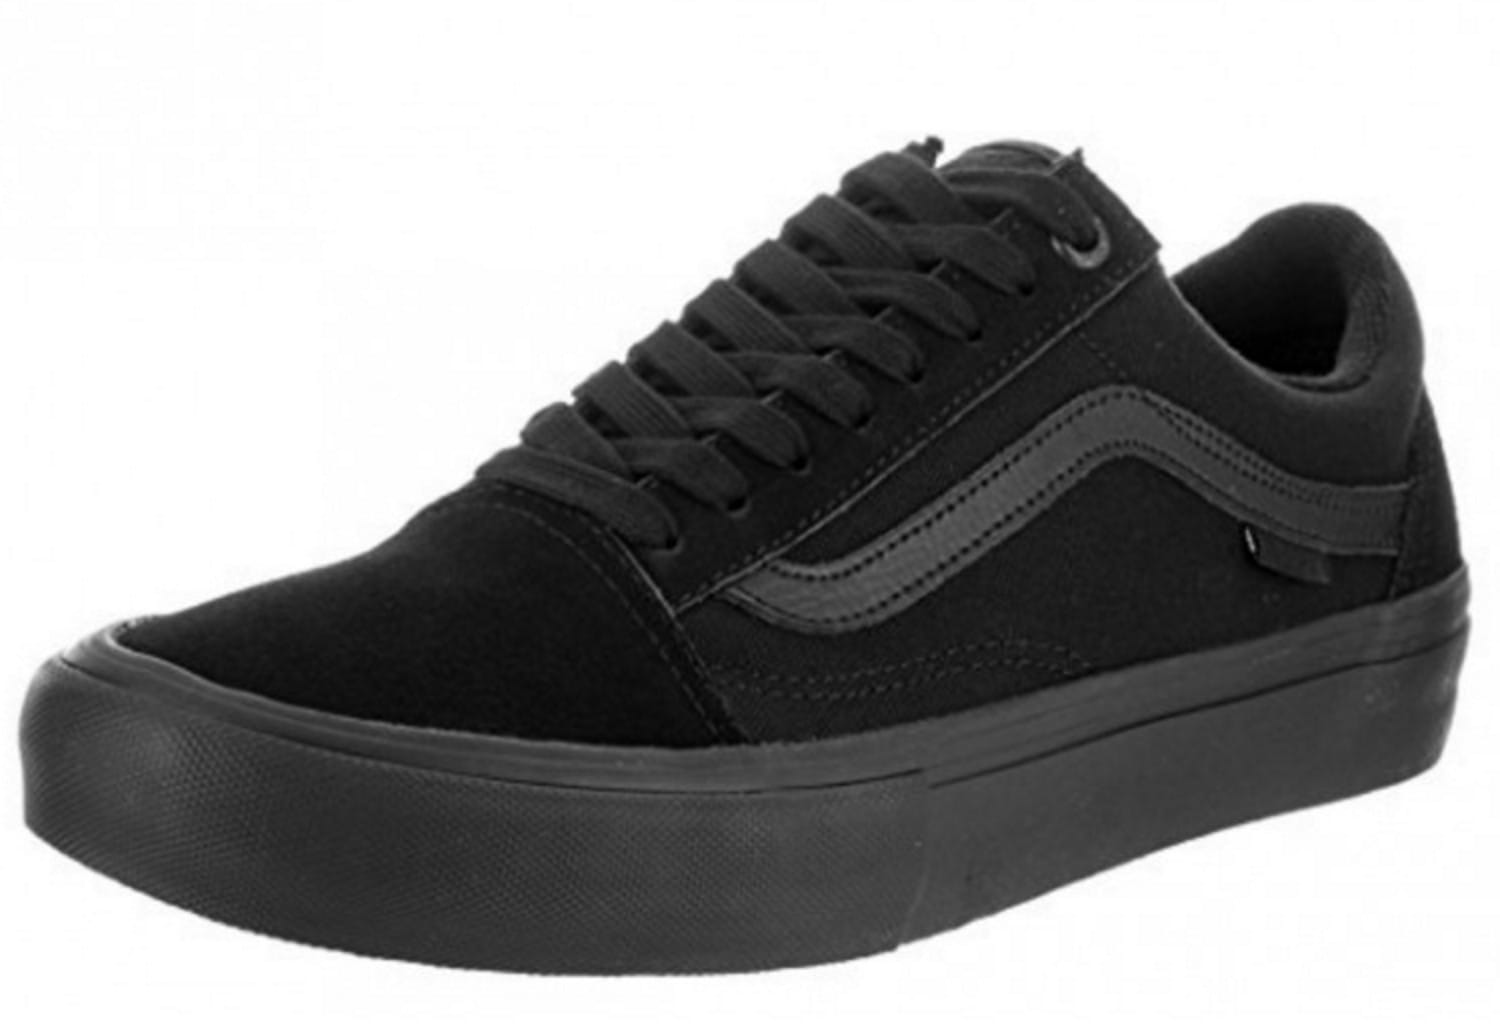 65f421bb5 Vans Old Skool baratas por 39